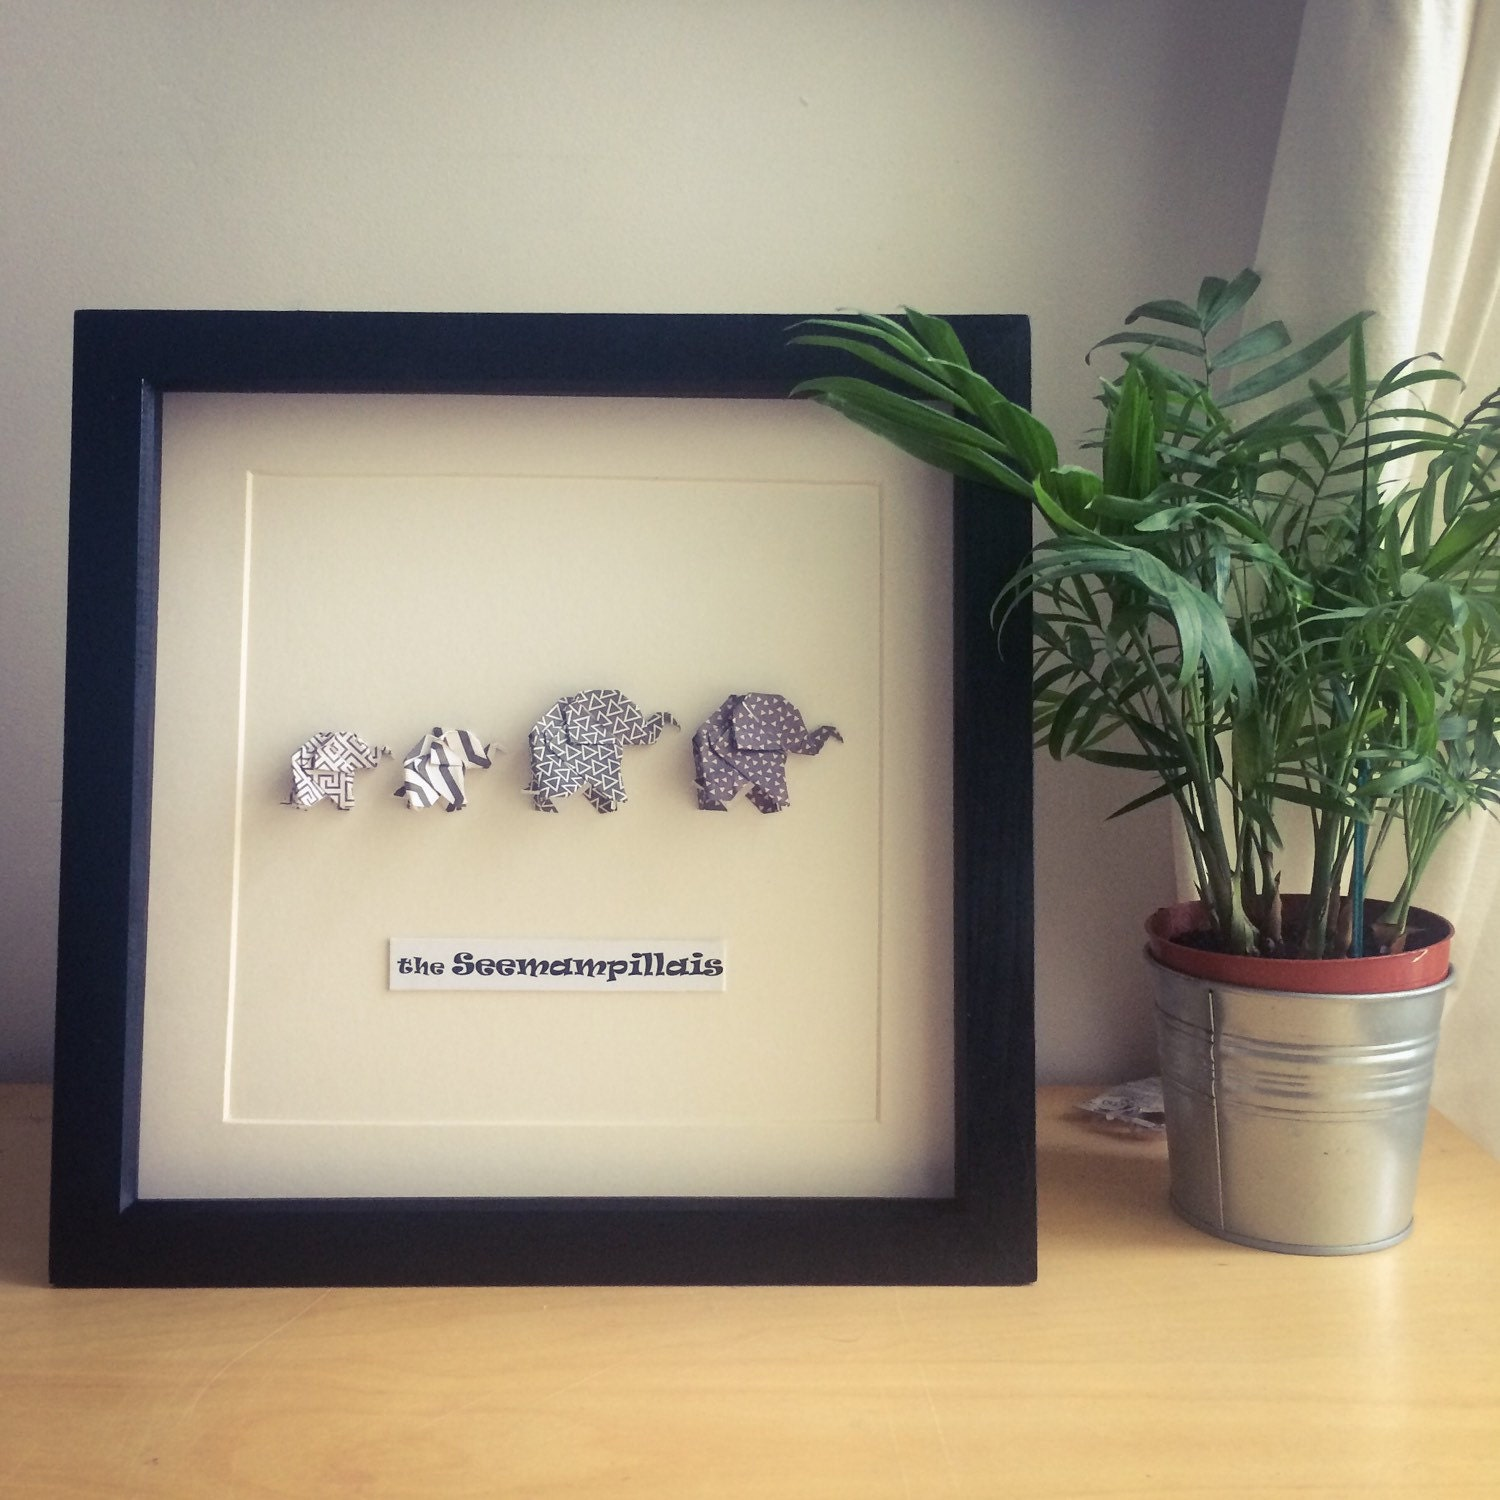 Origami Elephant family picture frame personalised new | Etsy